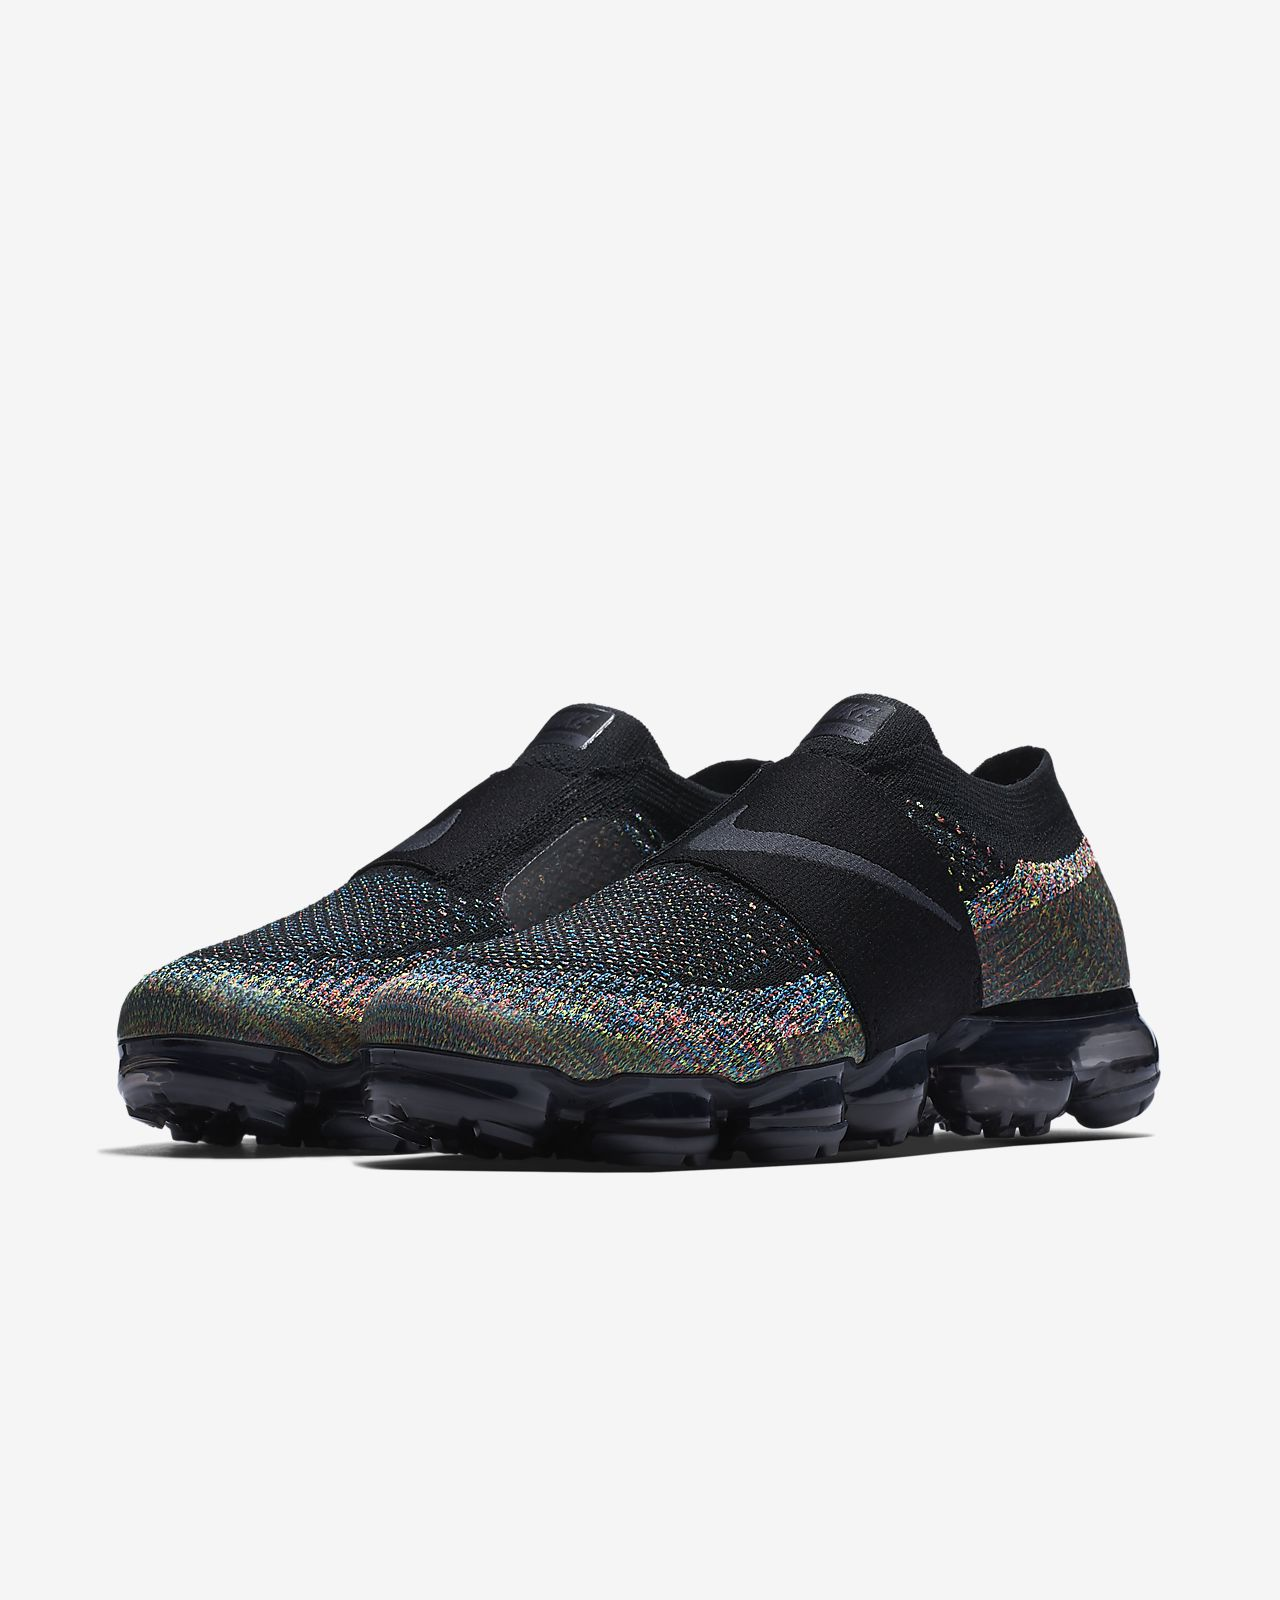 Nike Sportswear  Air Vapormax Flyknit MOC - Black/Anthracite/Volt/Hot Punch